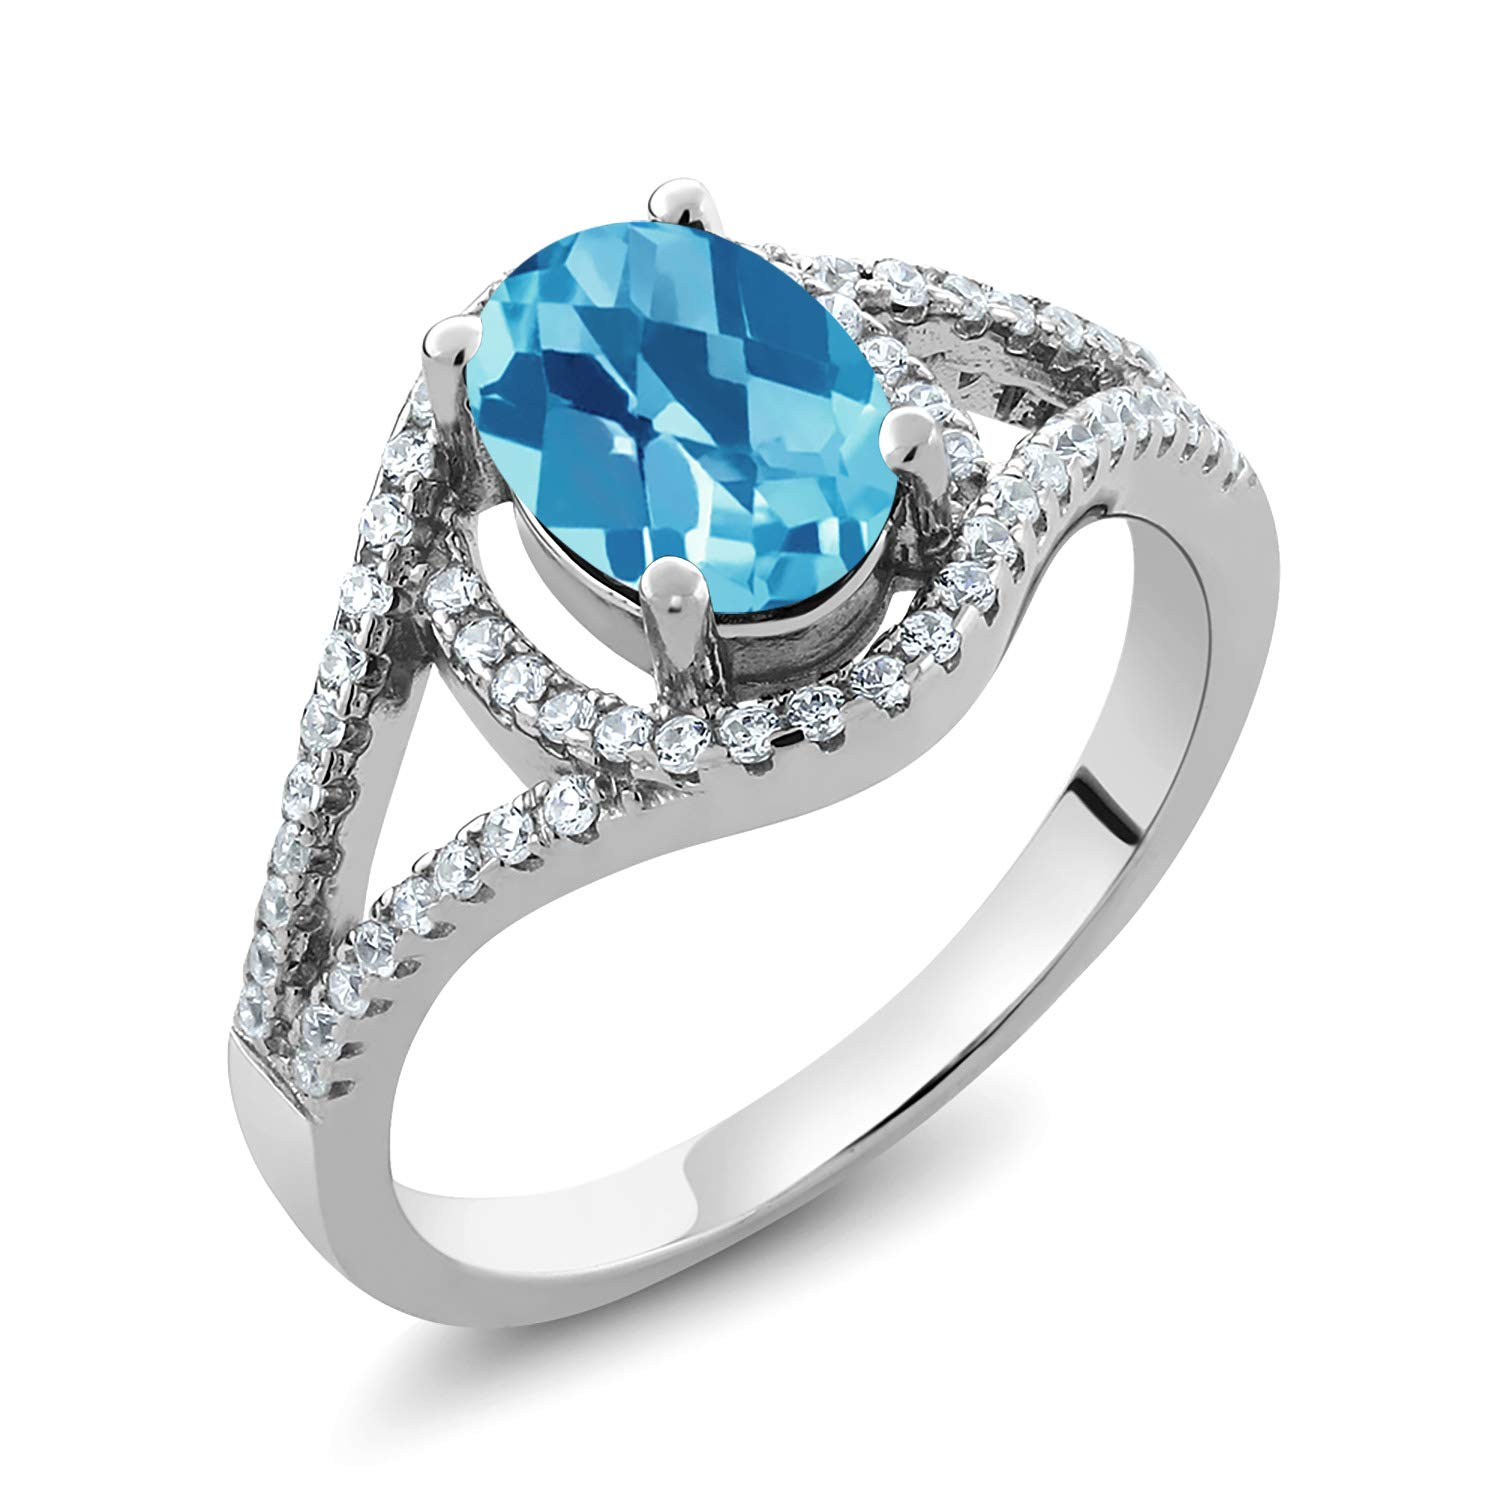 Gem Stone King 925 Sterling Silver Oval Checkerboard Swiss Blue Topaz Gemstone Birthstone Ring 2.01 cttw (Available 5,6,7,8,9)